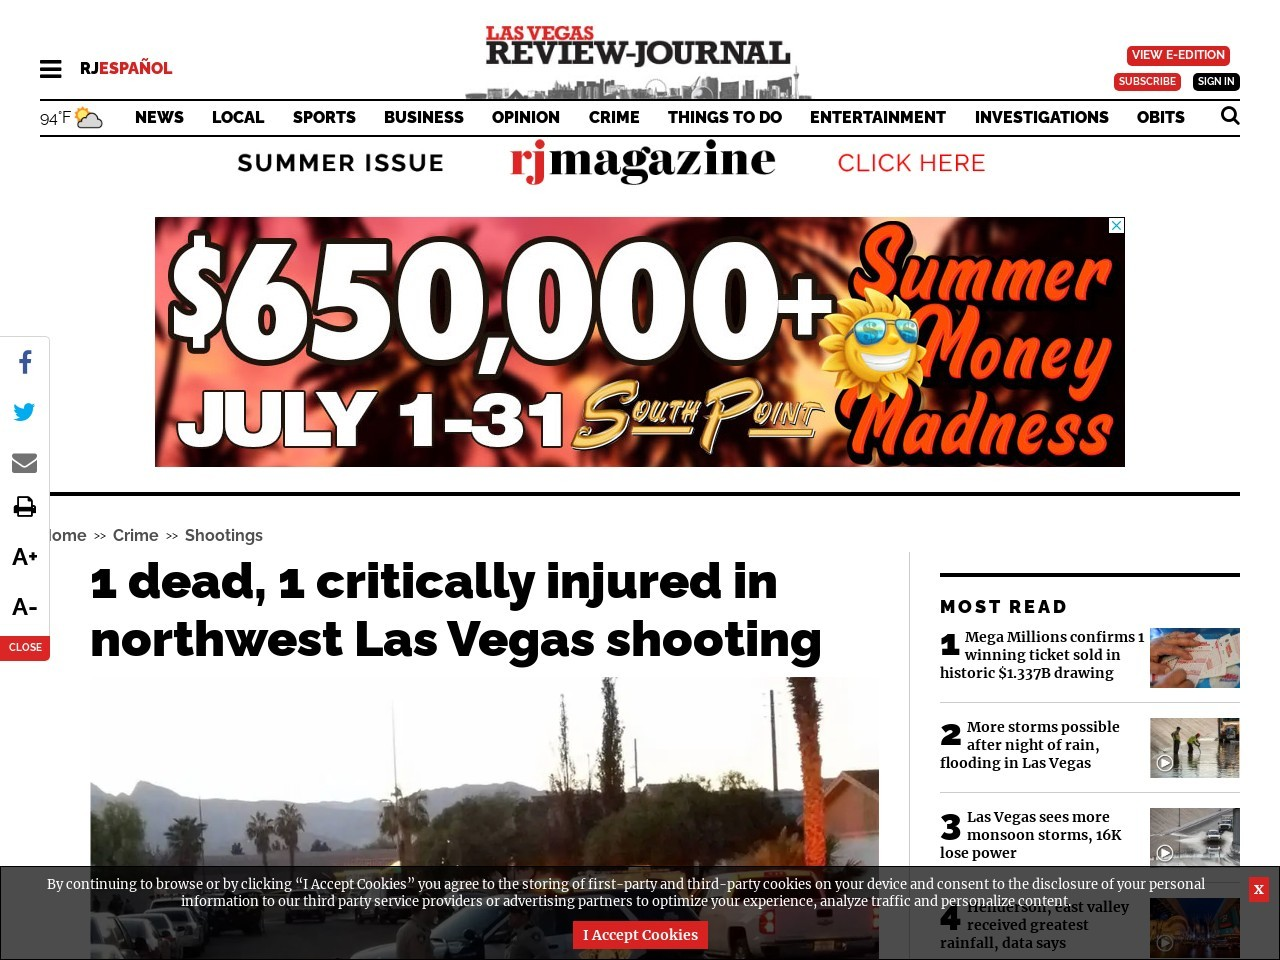 1 dead, 1 critically injured in northwest Las Vegas shooting